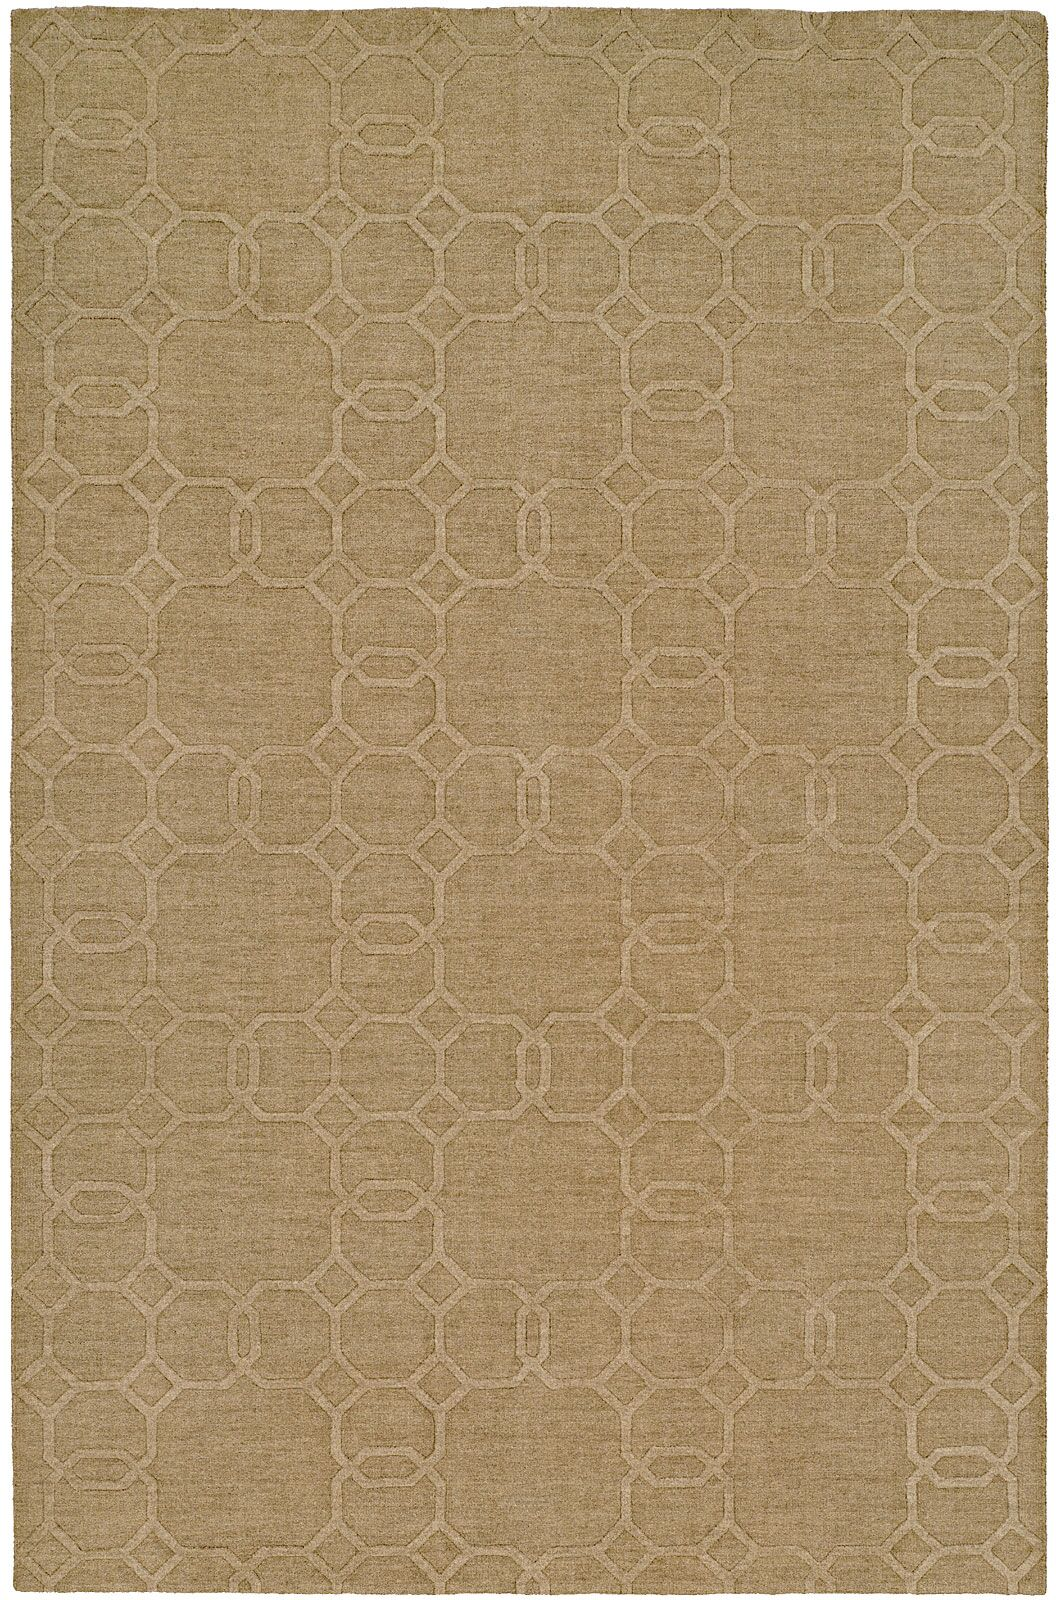 Buch Hand-Woven Beige Area Rug Rug Size: 9'6